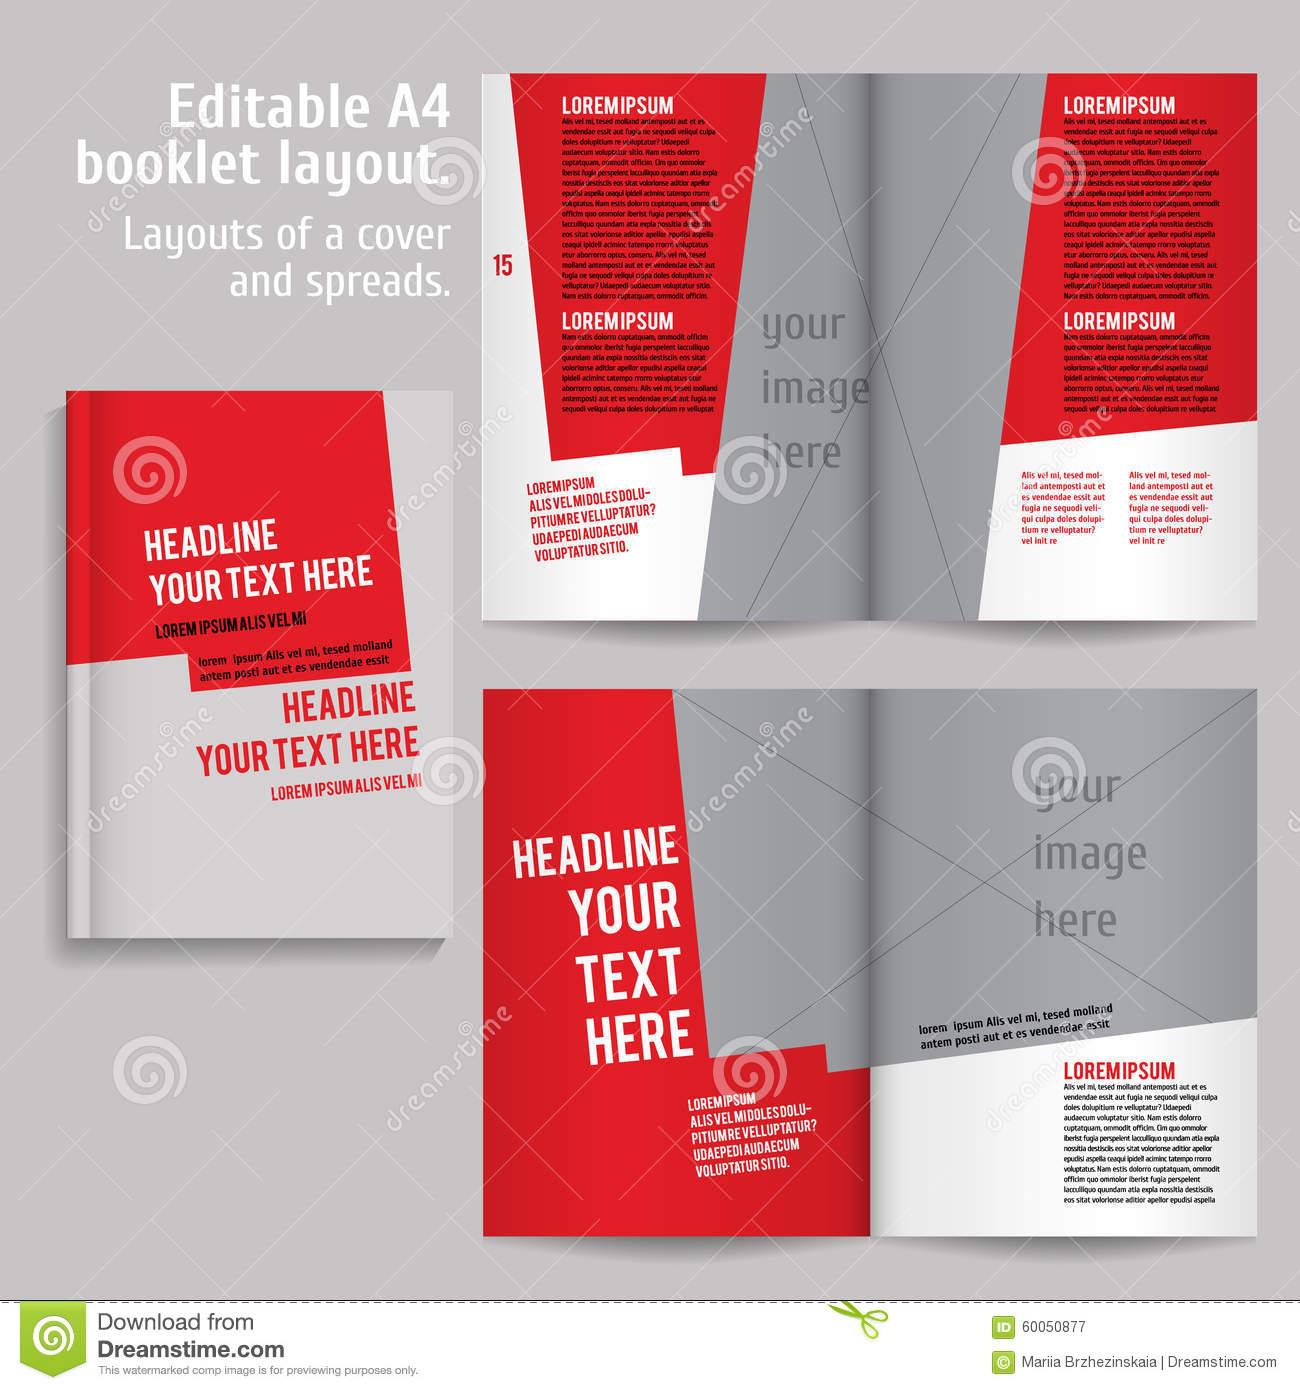 Free Book Formatting Templates Diy Book Formats Book Design Free - Free book formatting templates